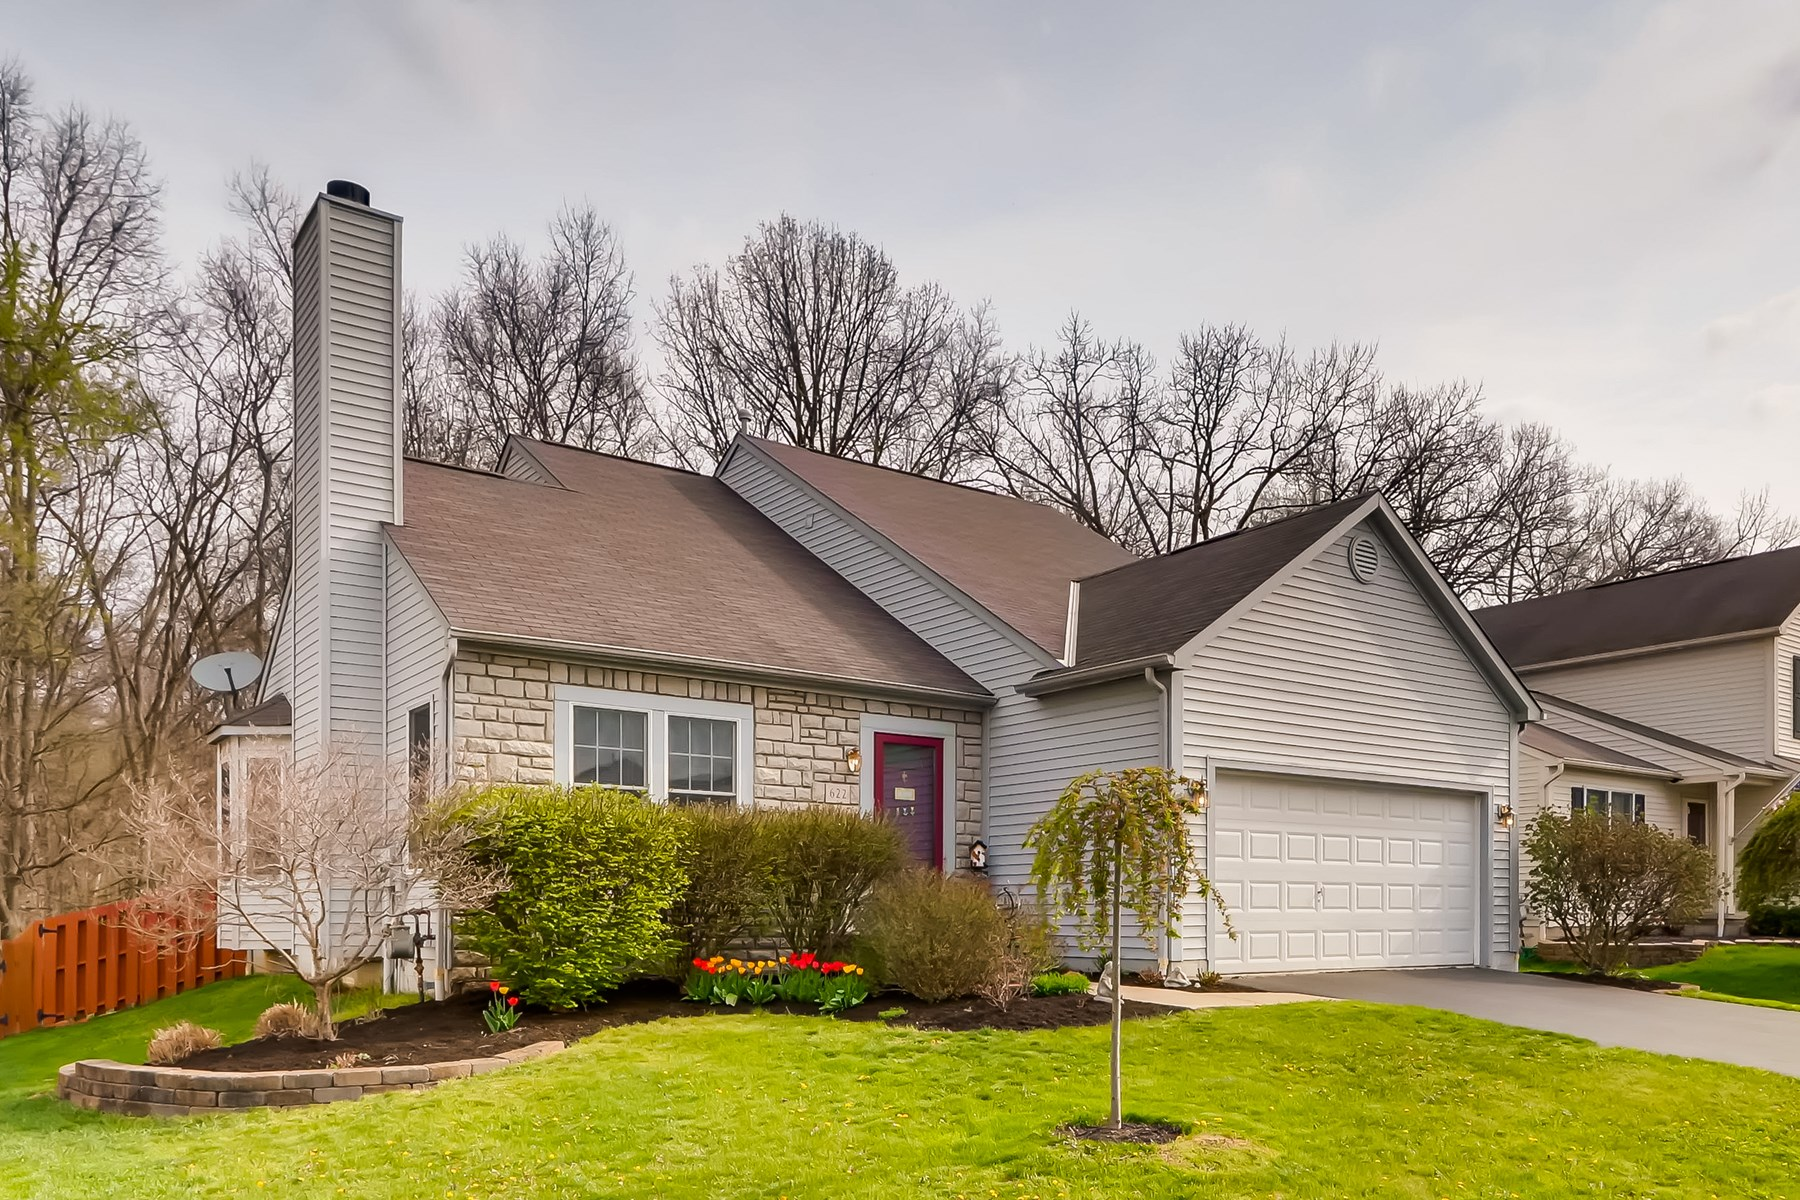 Beautiful Home For Sale in Desirable Sunbury